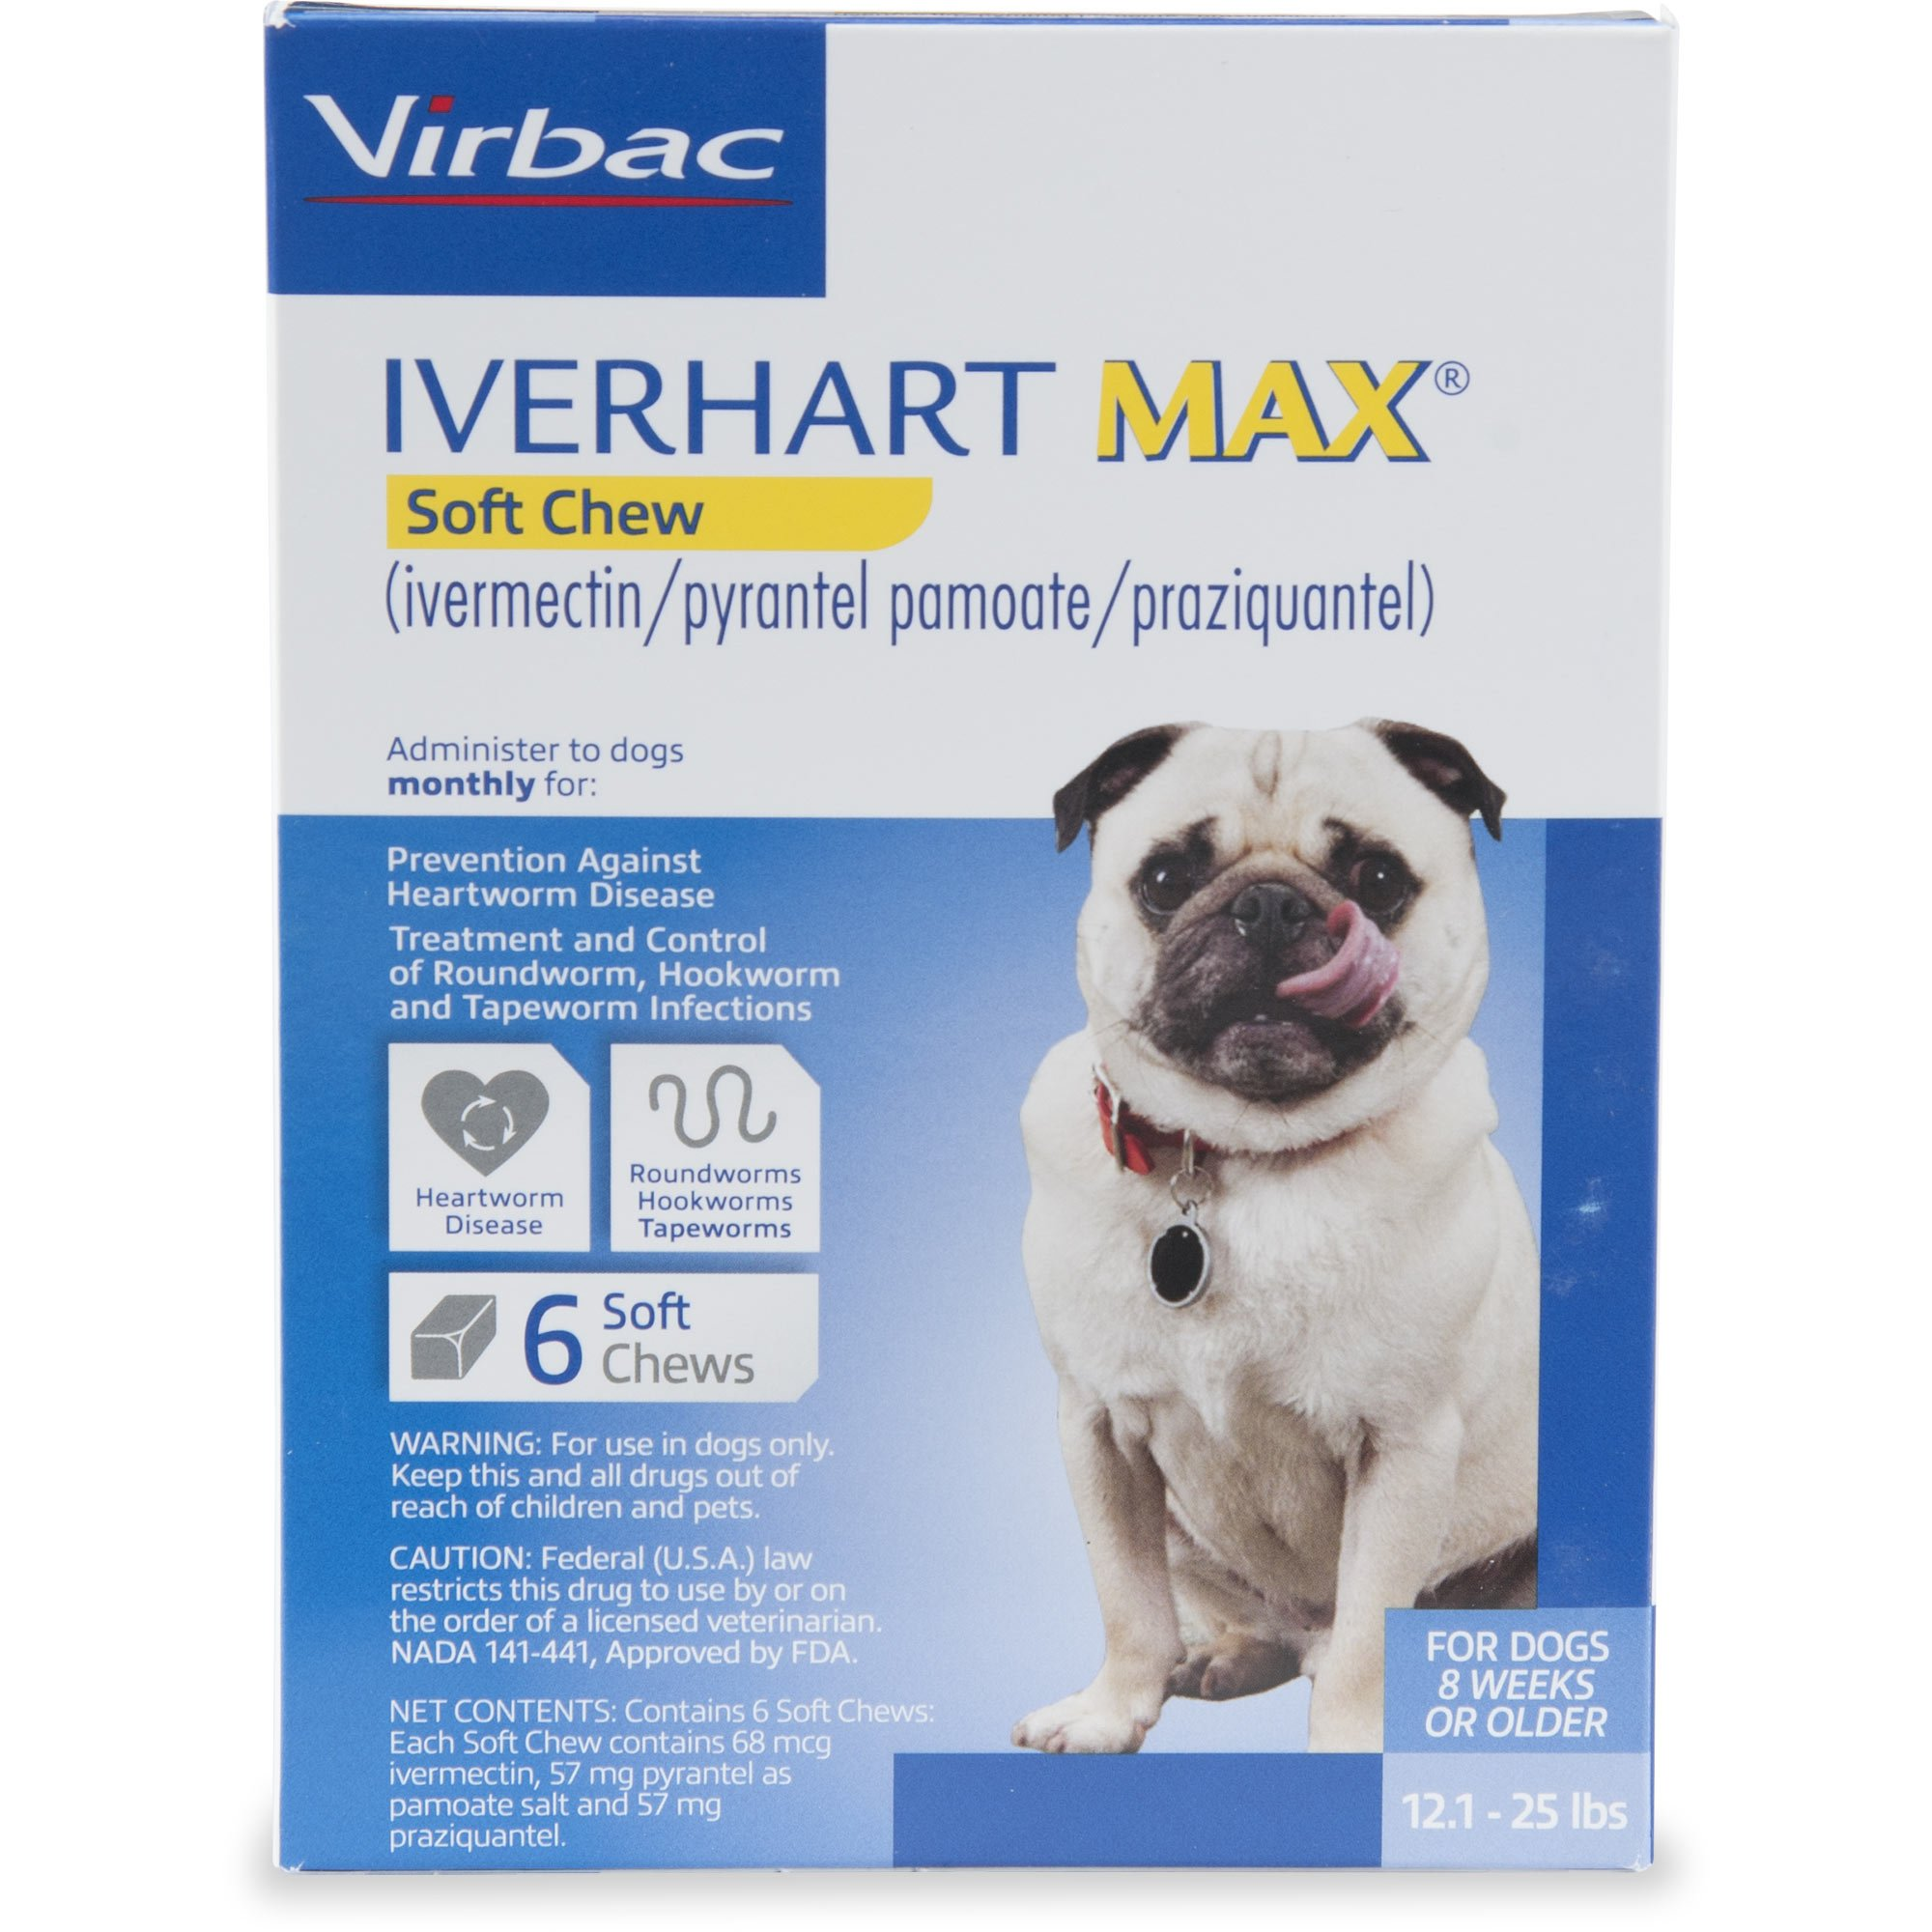 Iverhart Max Soft Chews for Dogs 12 to 25 lbs  | Petco